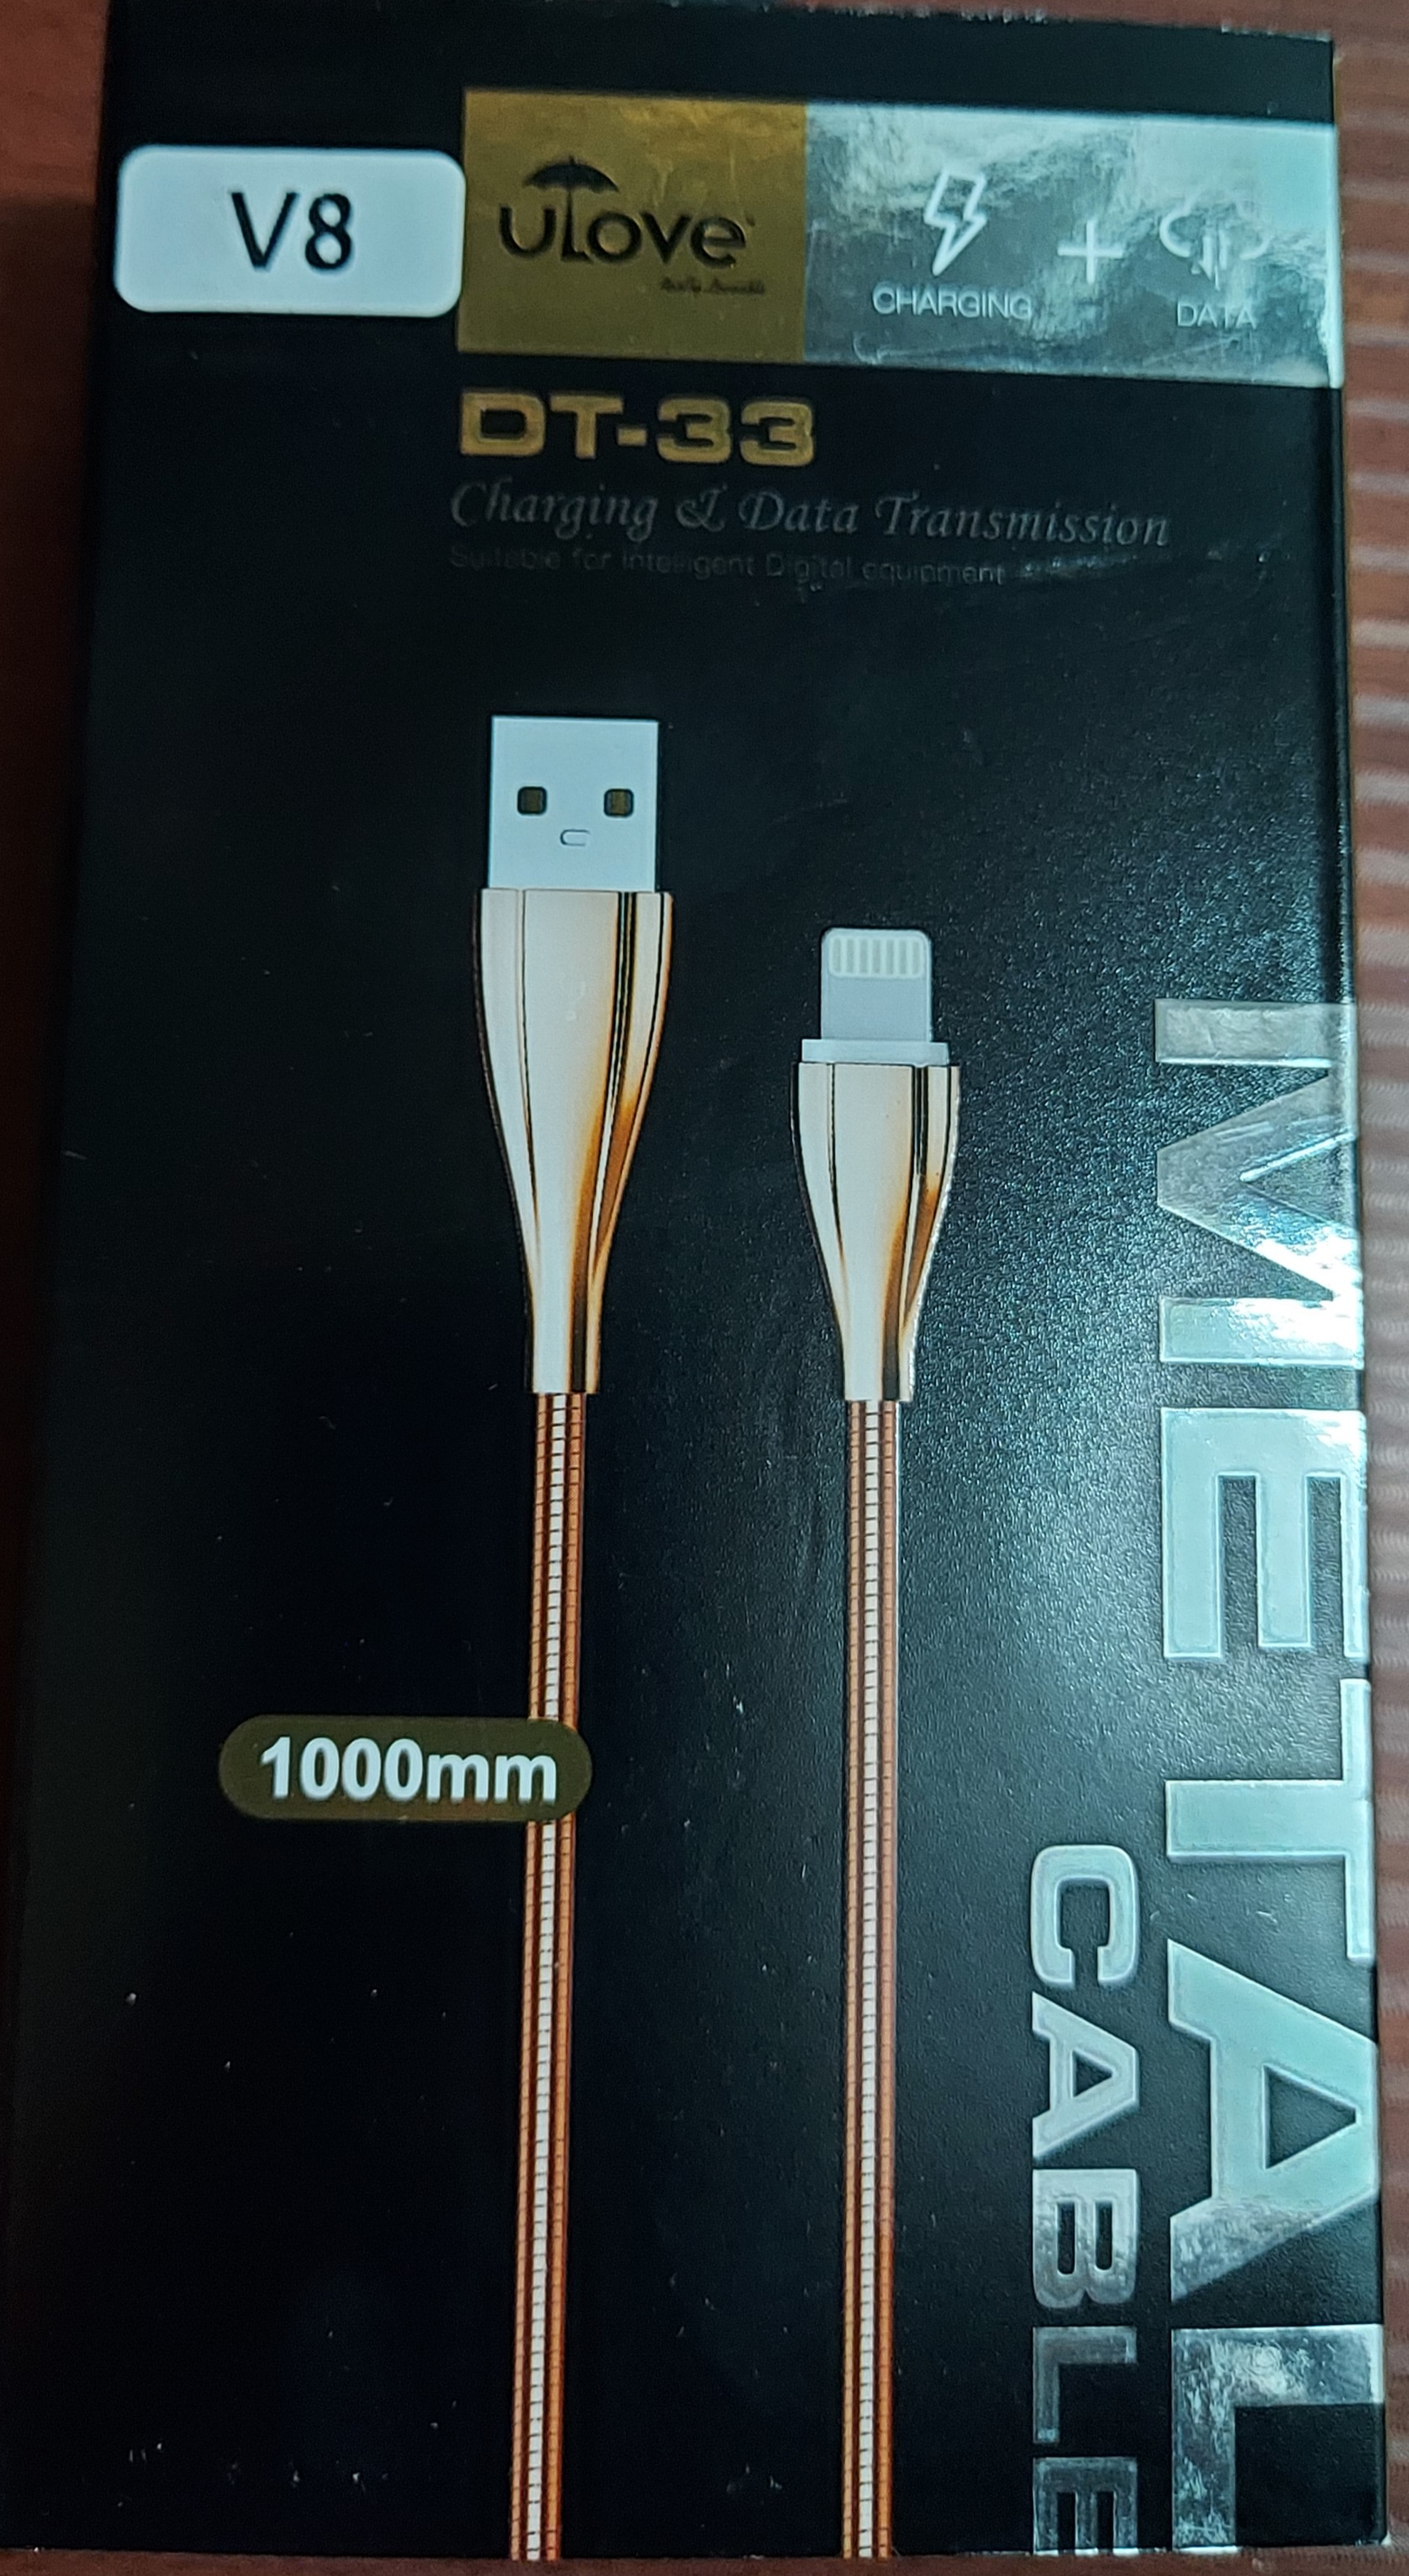 U Love 2.0 Fast Charging Data Cable for V8 Android